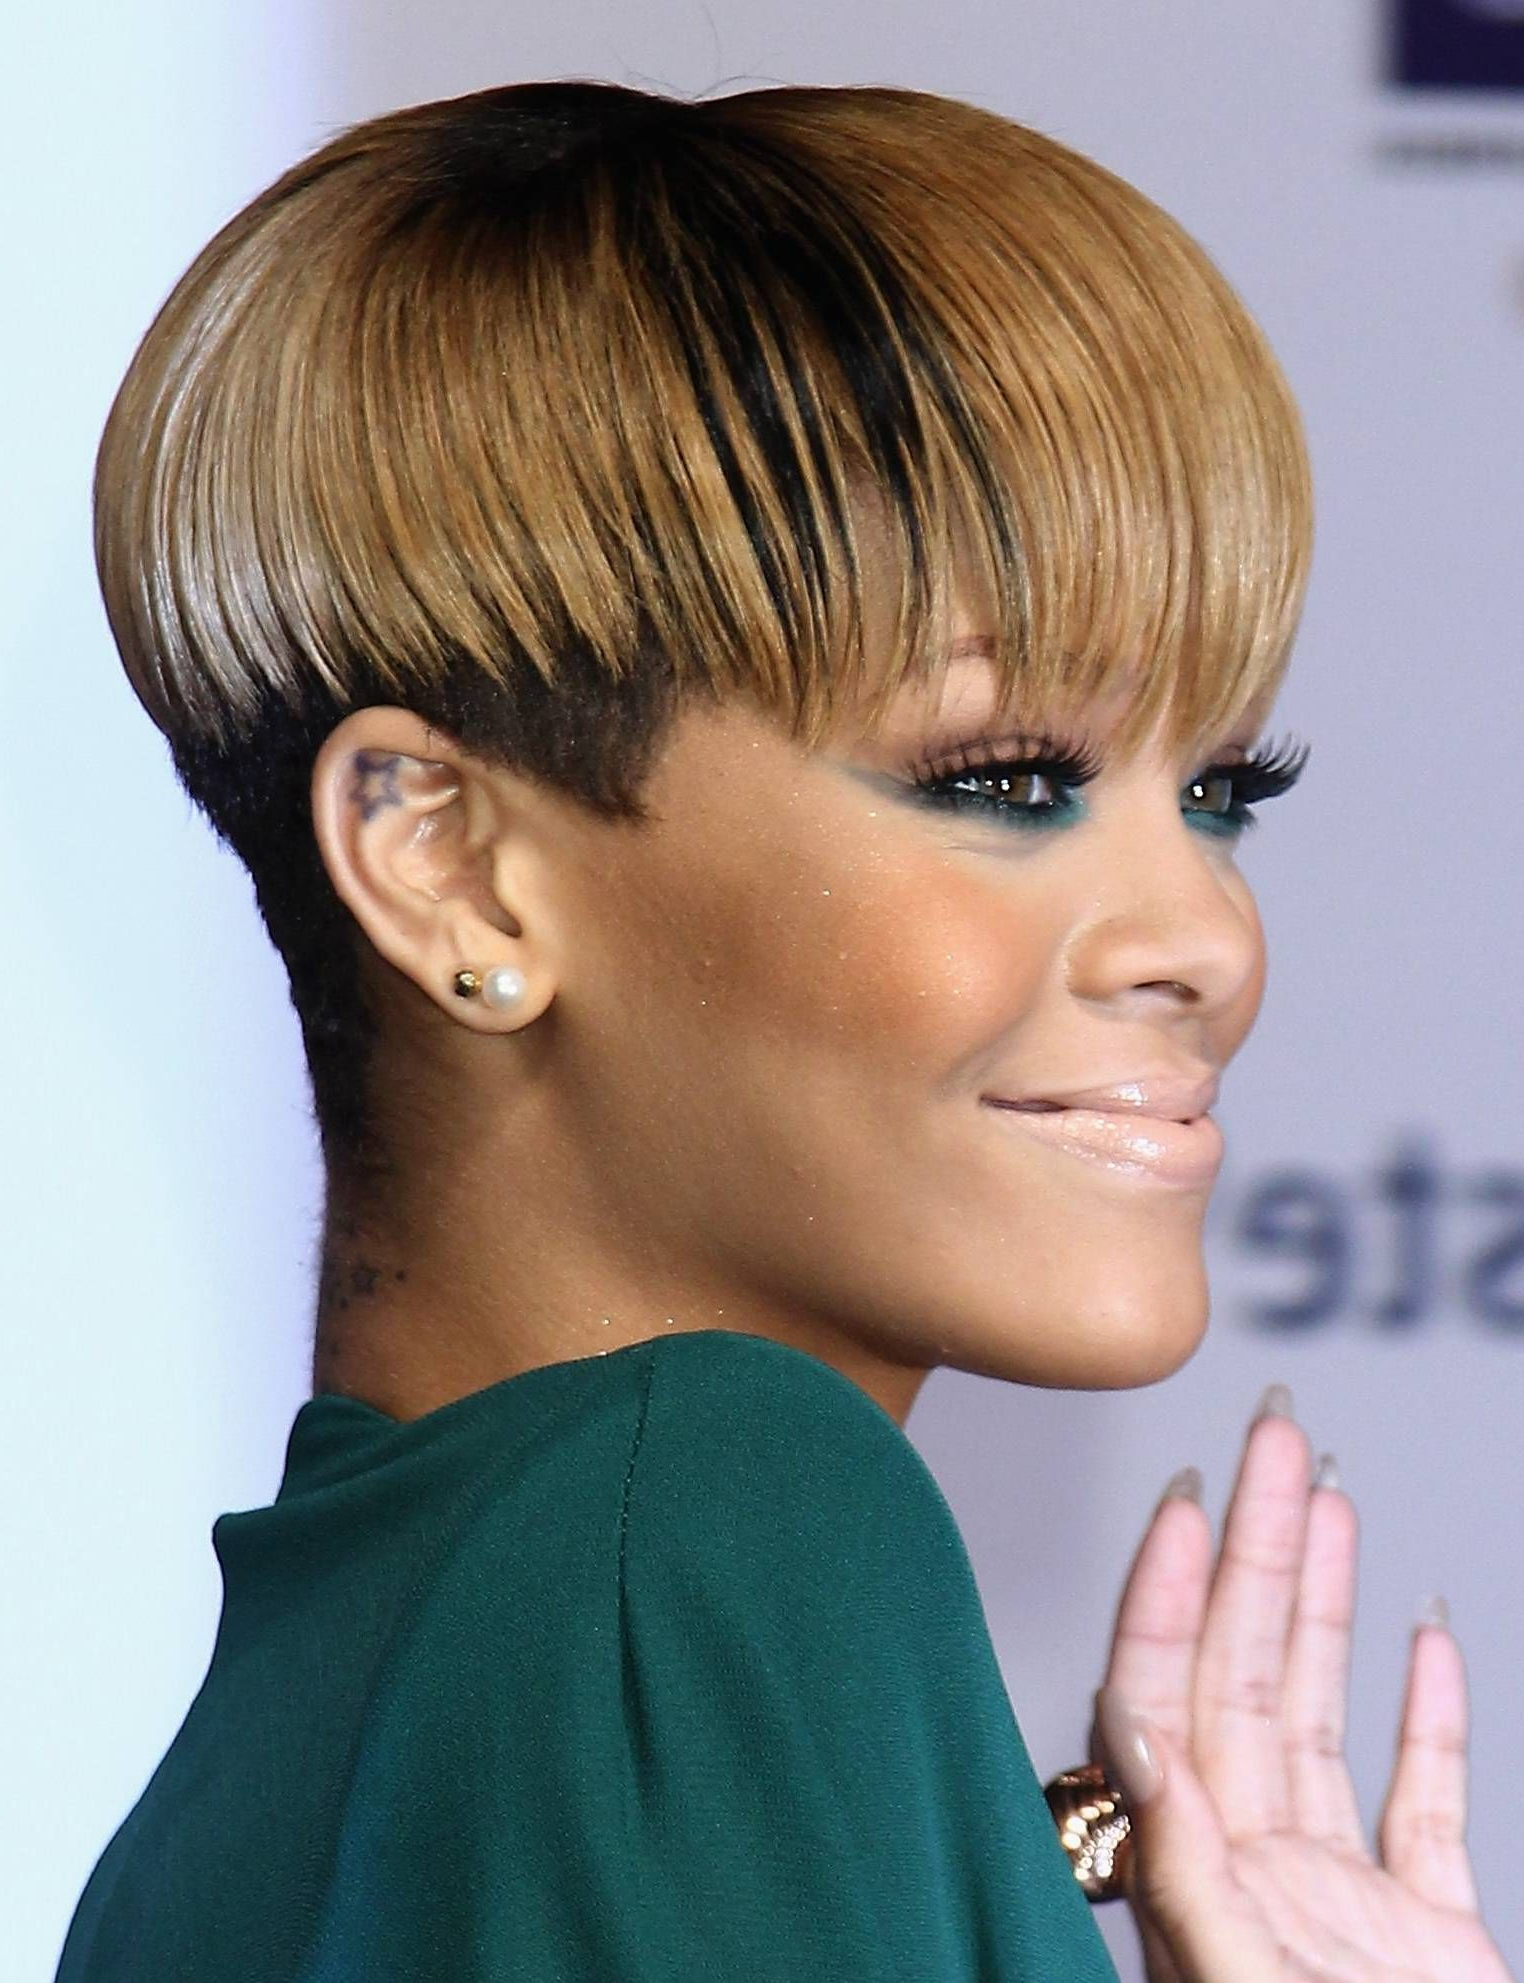 Short Haircuts: The Best Edgy Styles For Black Women In 2018 In Bob Short Hairstyles For Black Women (View 9 of 25)